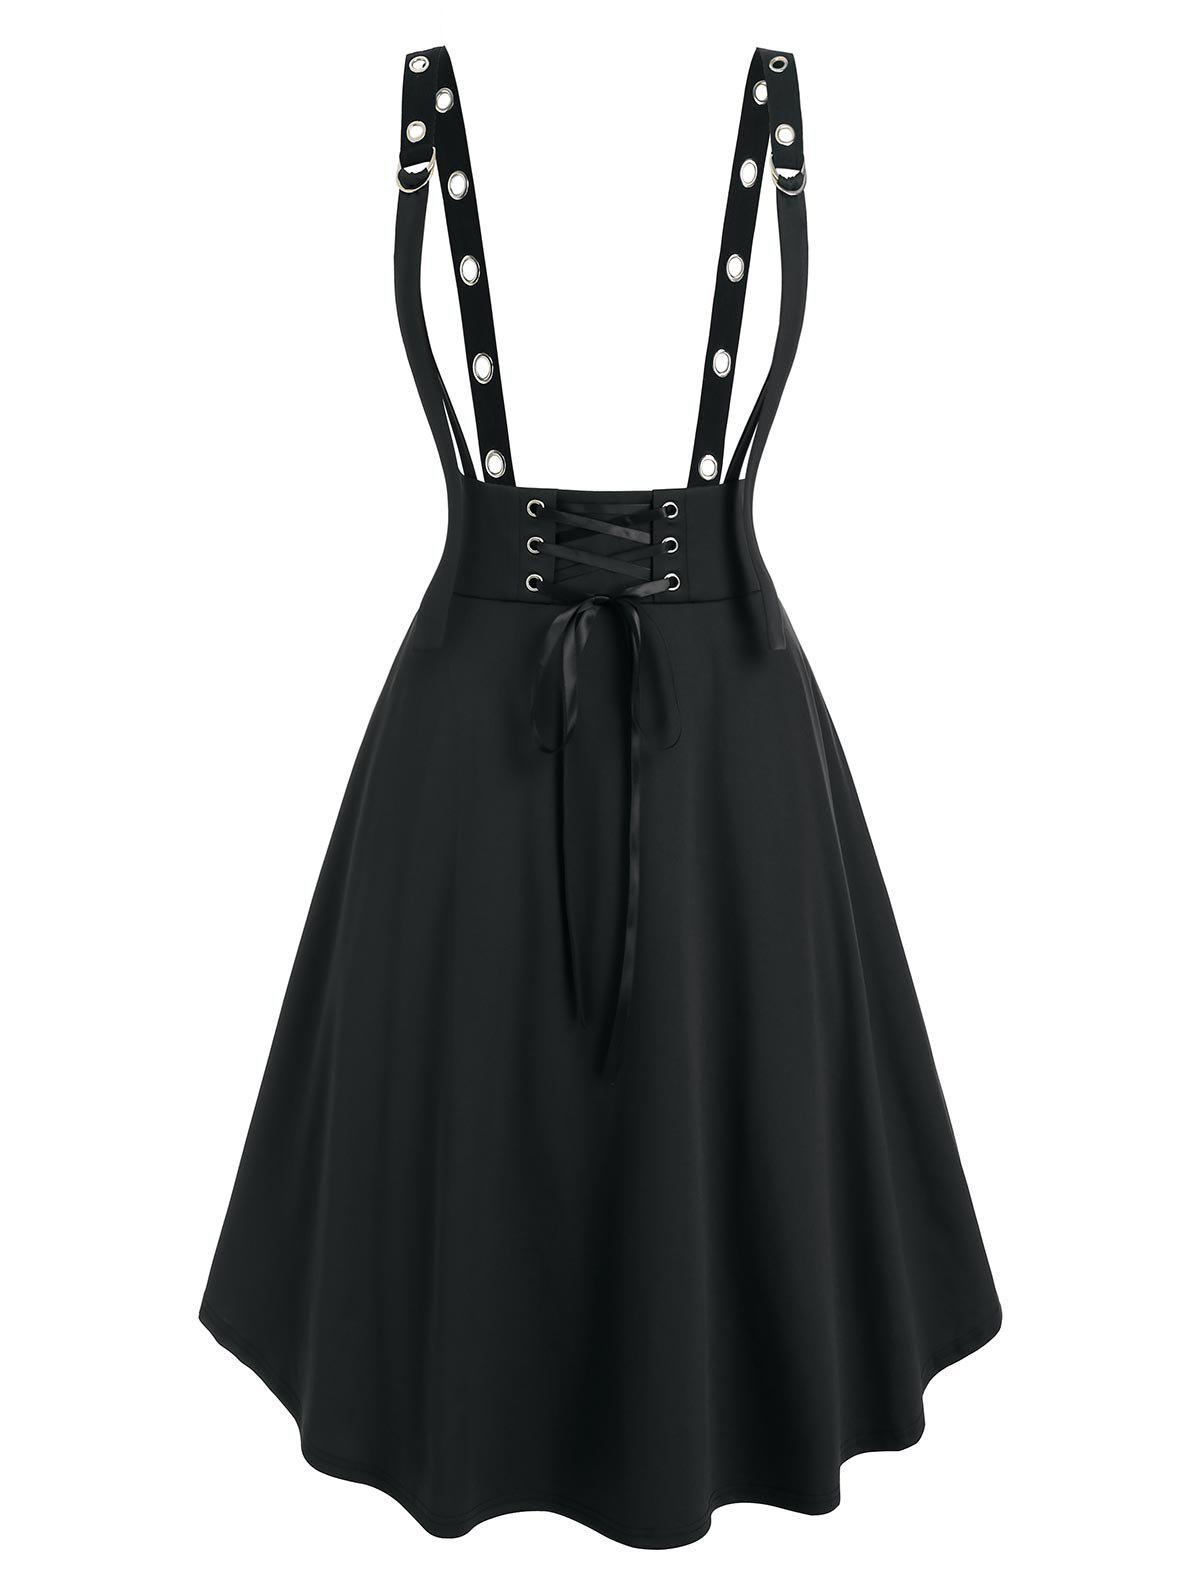 Plus Size Lace Up Grommet D Ring Suspender Skirt - BLACK 2X